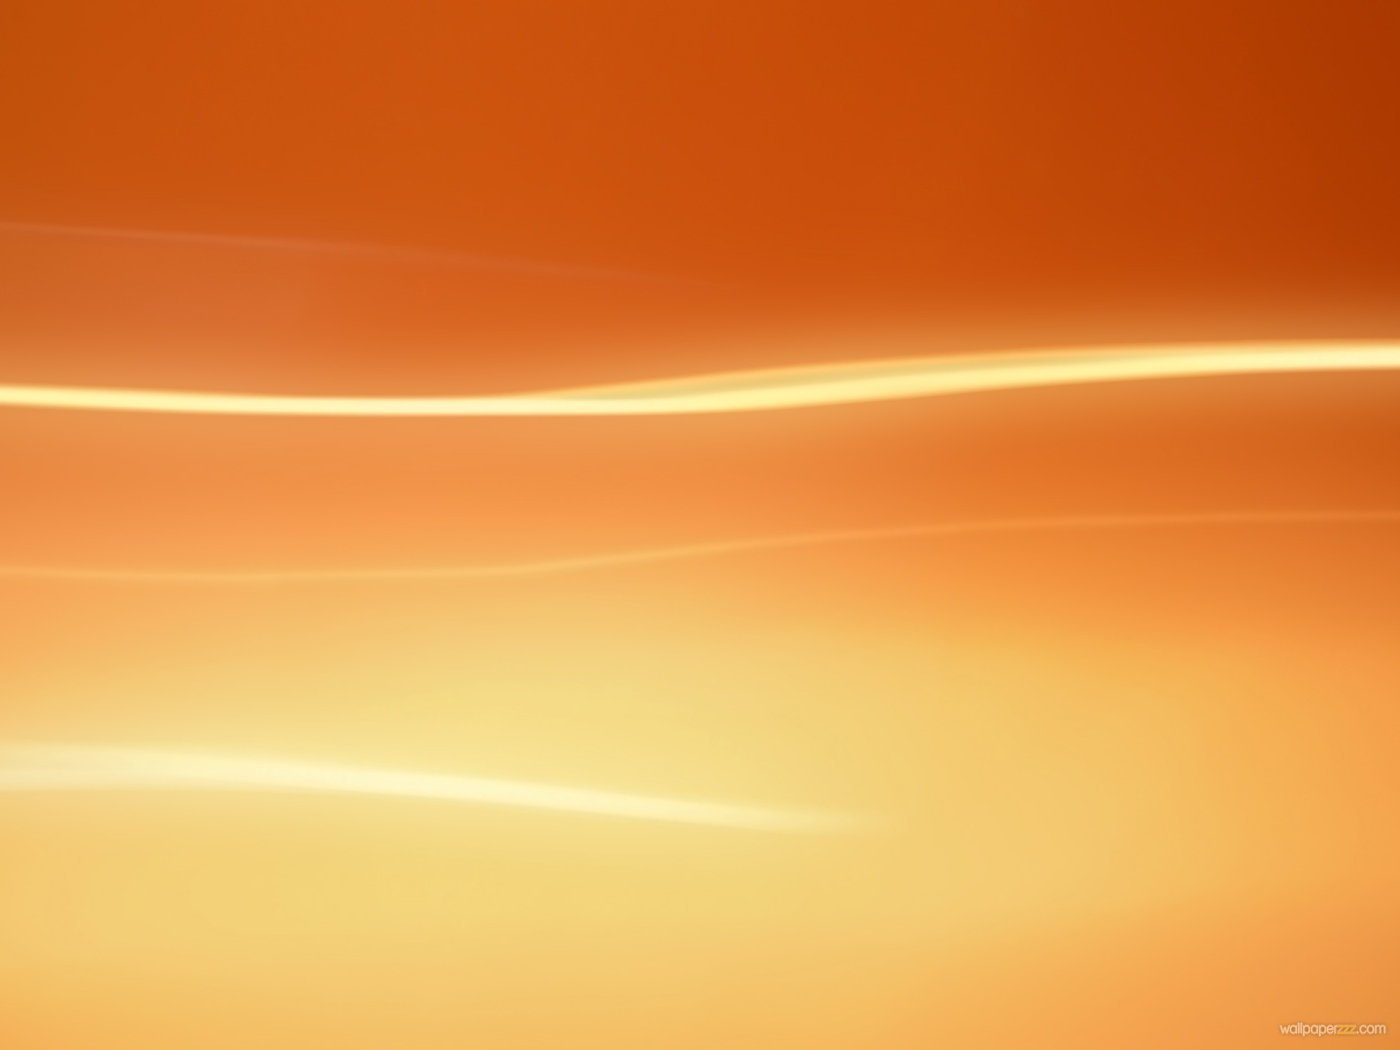 Download Orange Abstract Wallpaper Wallpaper 1400x1050